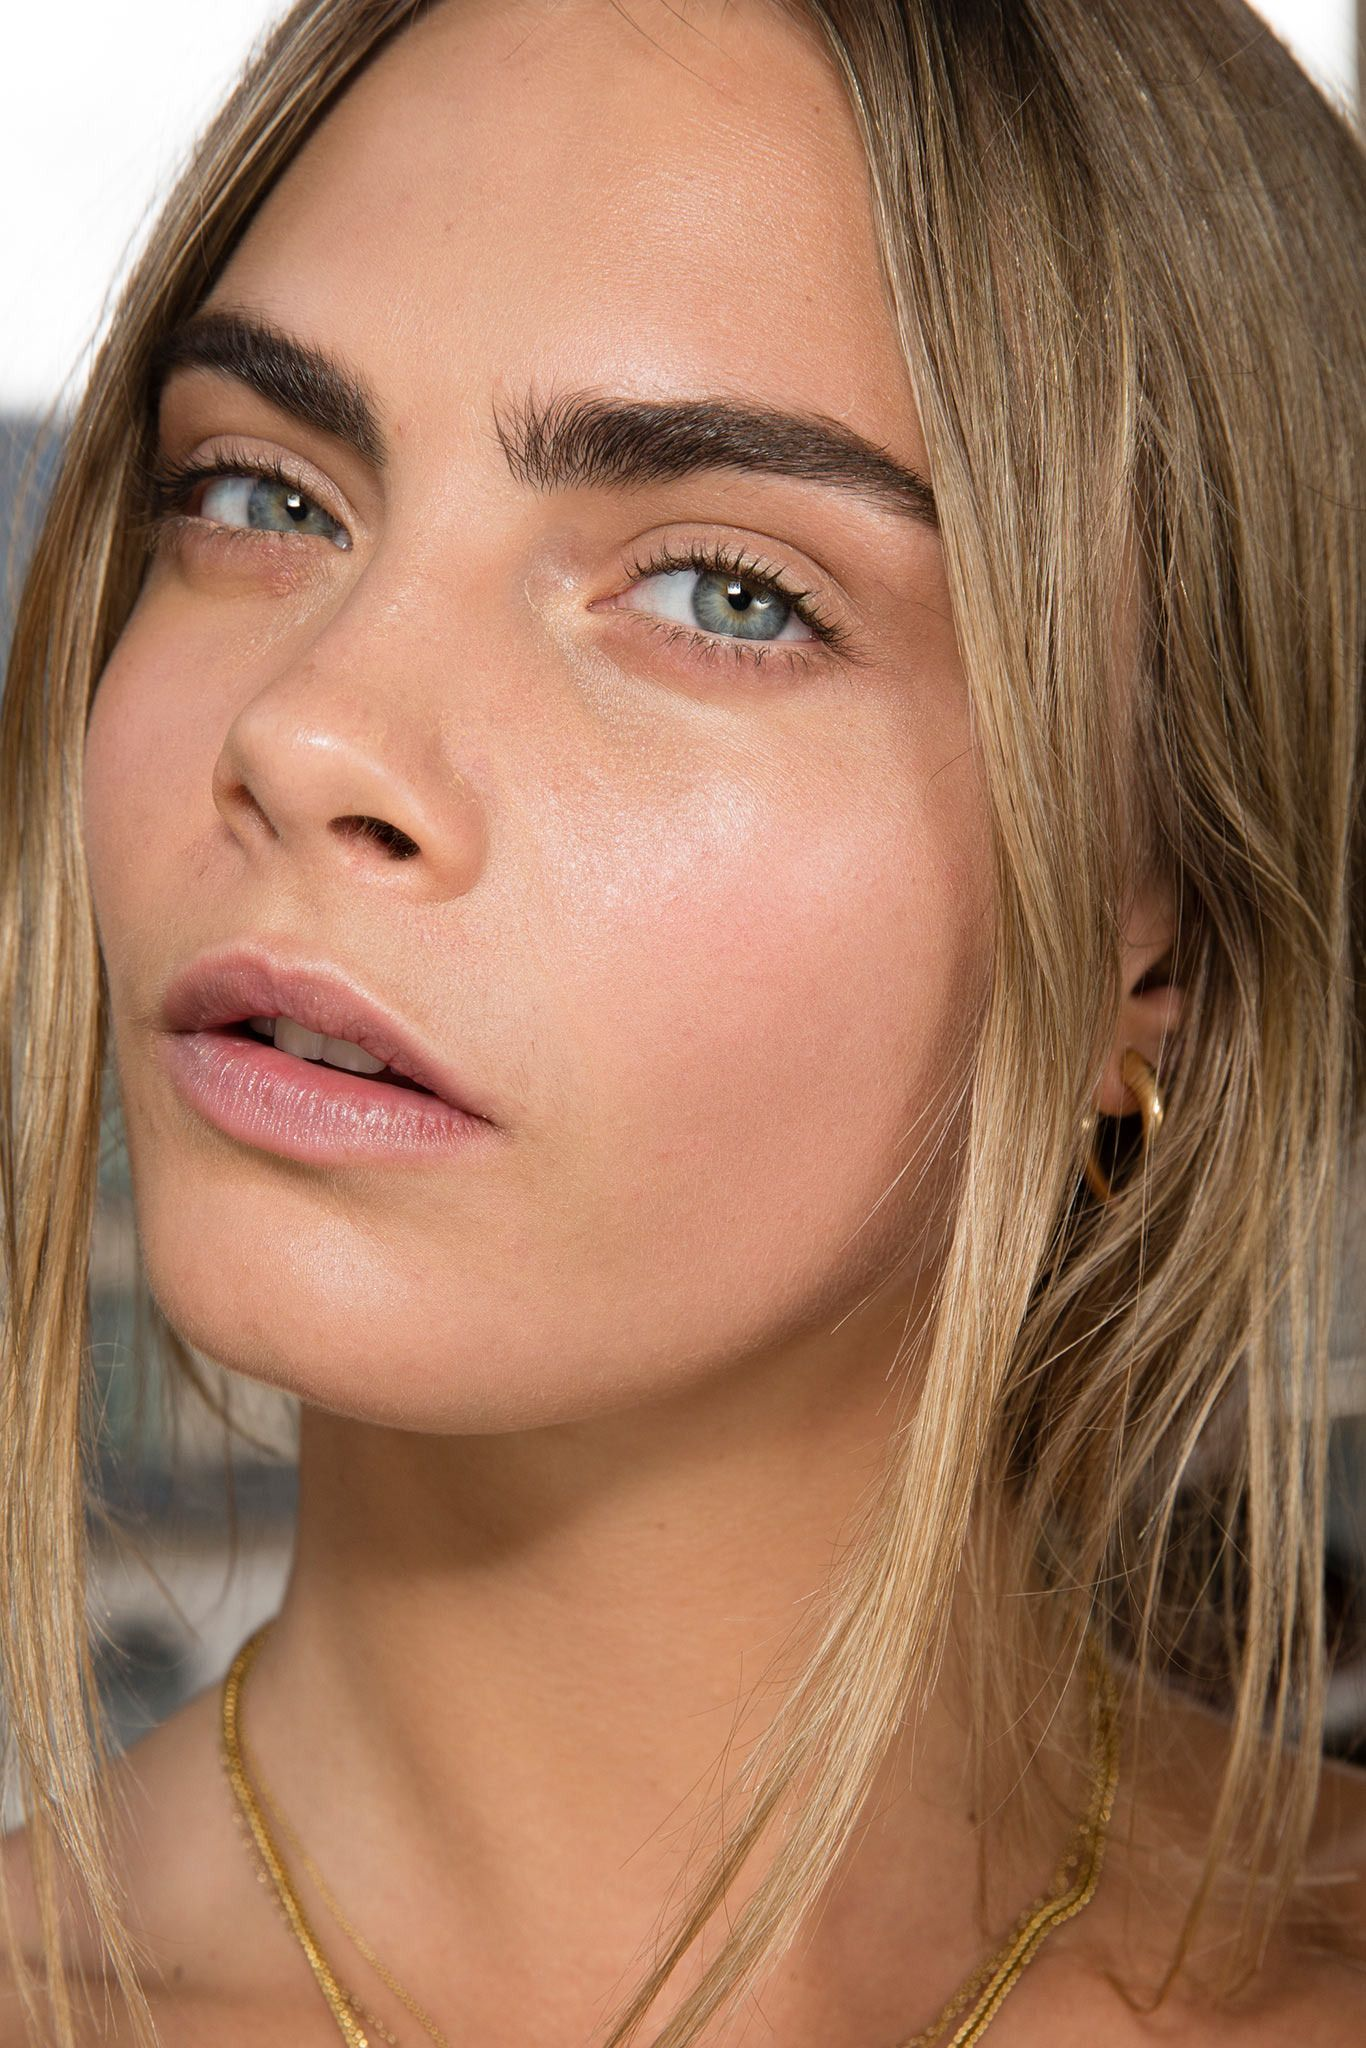 City print candle Cara delevingne, Eyebrows and Full